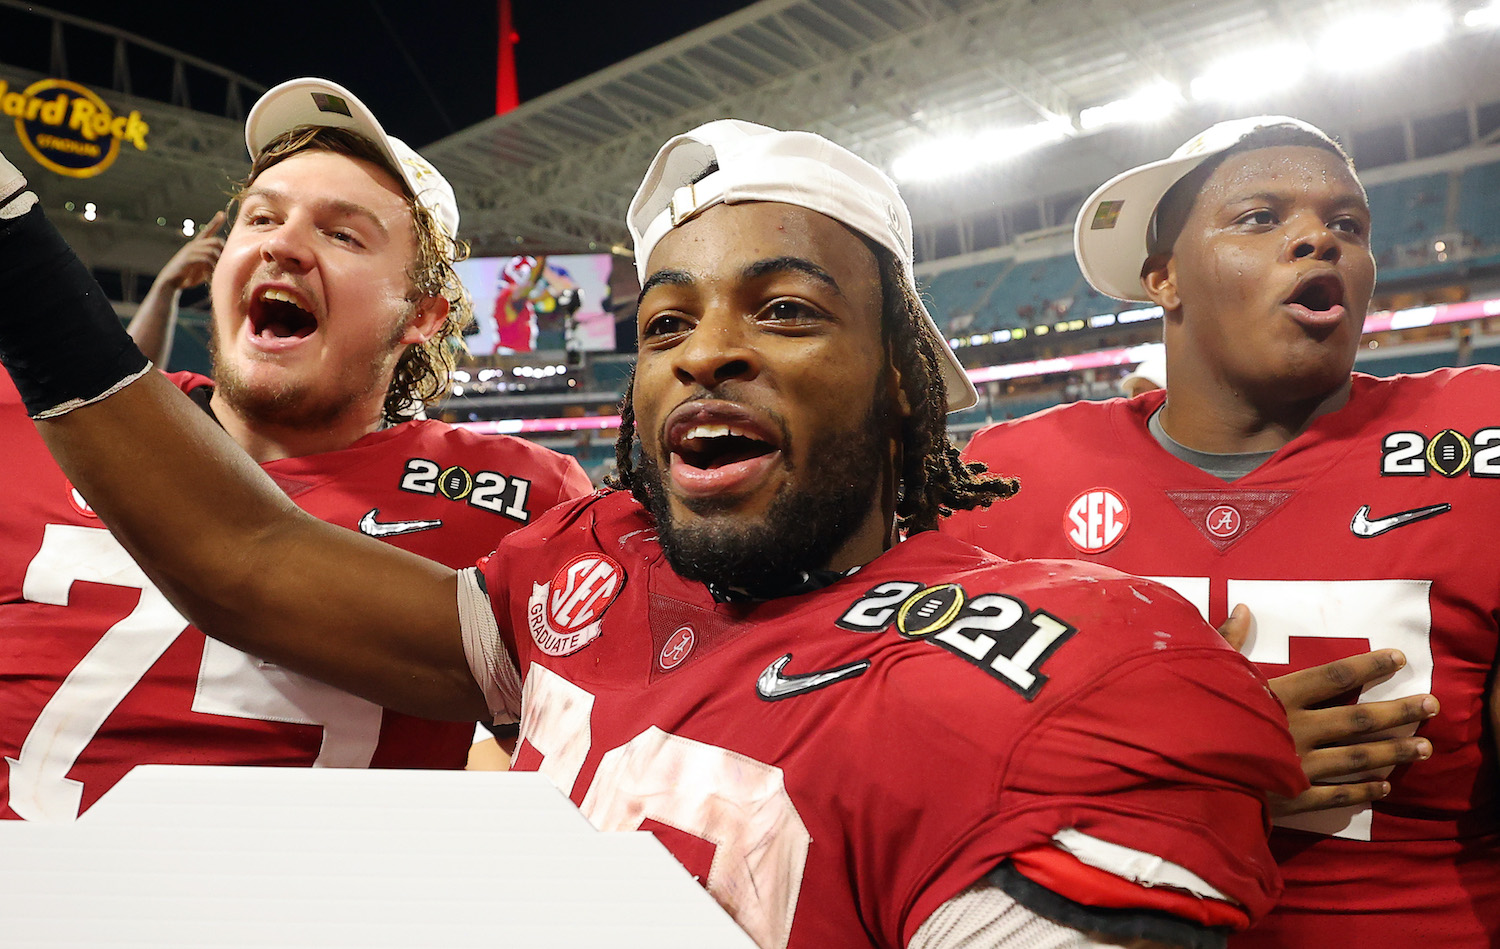 MIAMI GARDENS, FLORIDA - JANUARY 11: Najee Harris #22 of the Alabama Crimson Tide celebrates following the College Football Playoff National Championship game win over the Ohio State Buckeyes at Hard Rock Stadium on January 11, 2021 in Miami Gardens, Florida. (Photo by Kevin C. Cox/Getty Images)